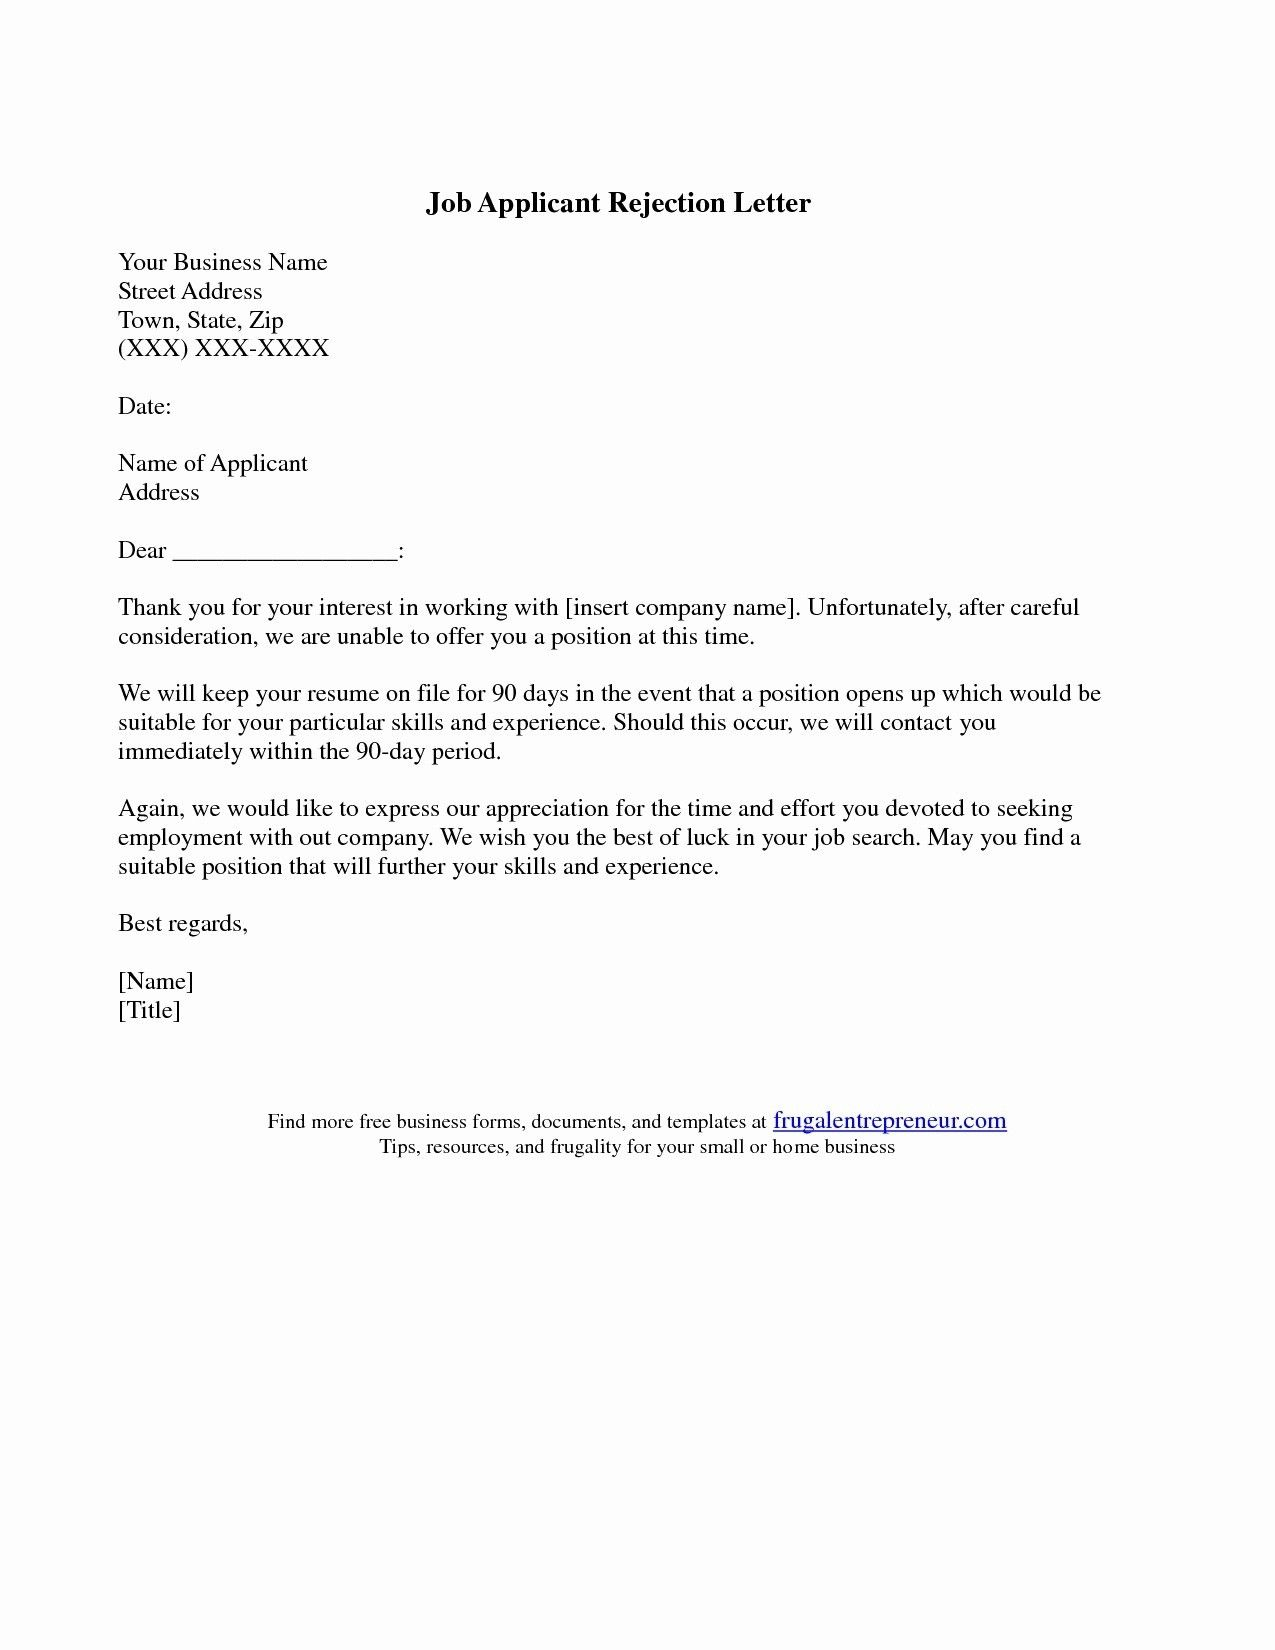 New Job Rejection Letter Template Reference Page For Resume Job